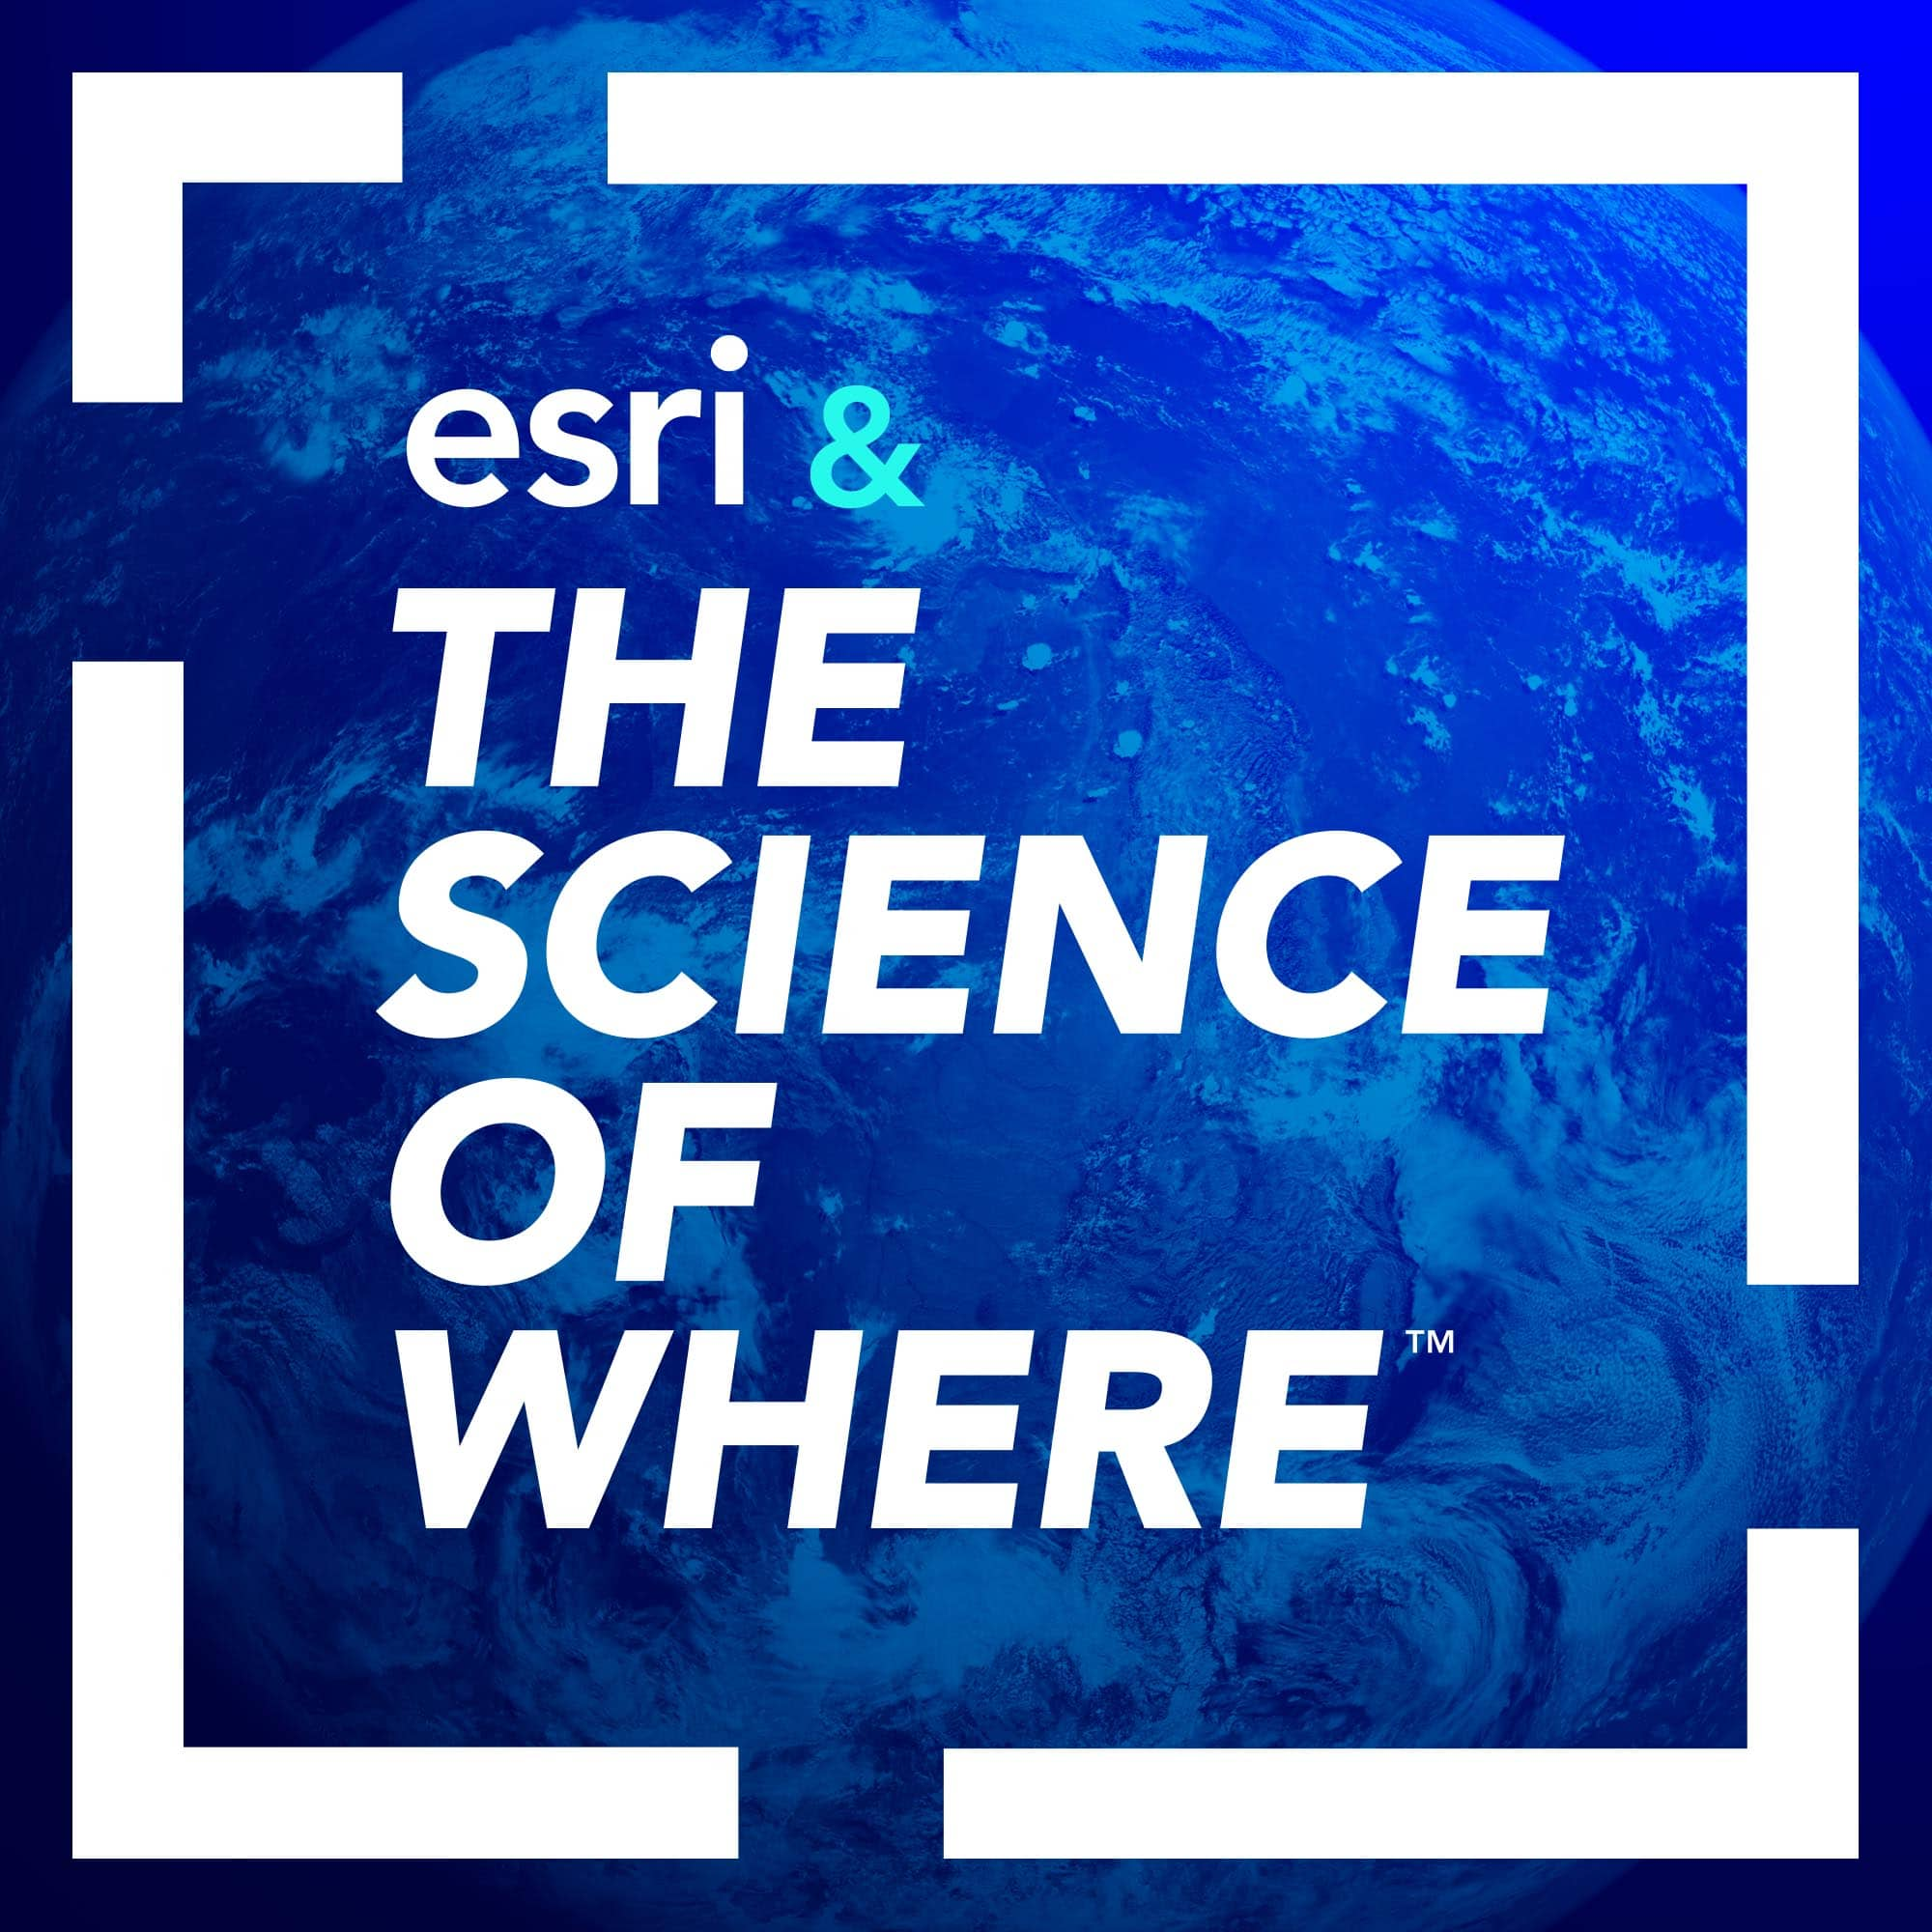 Esri & The Science of Where Logo